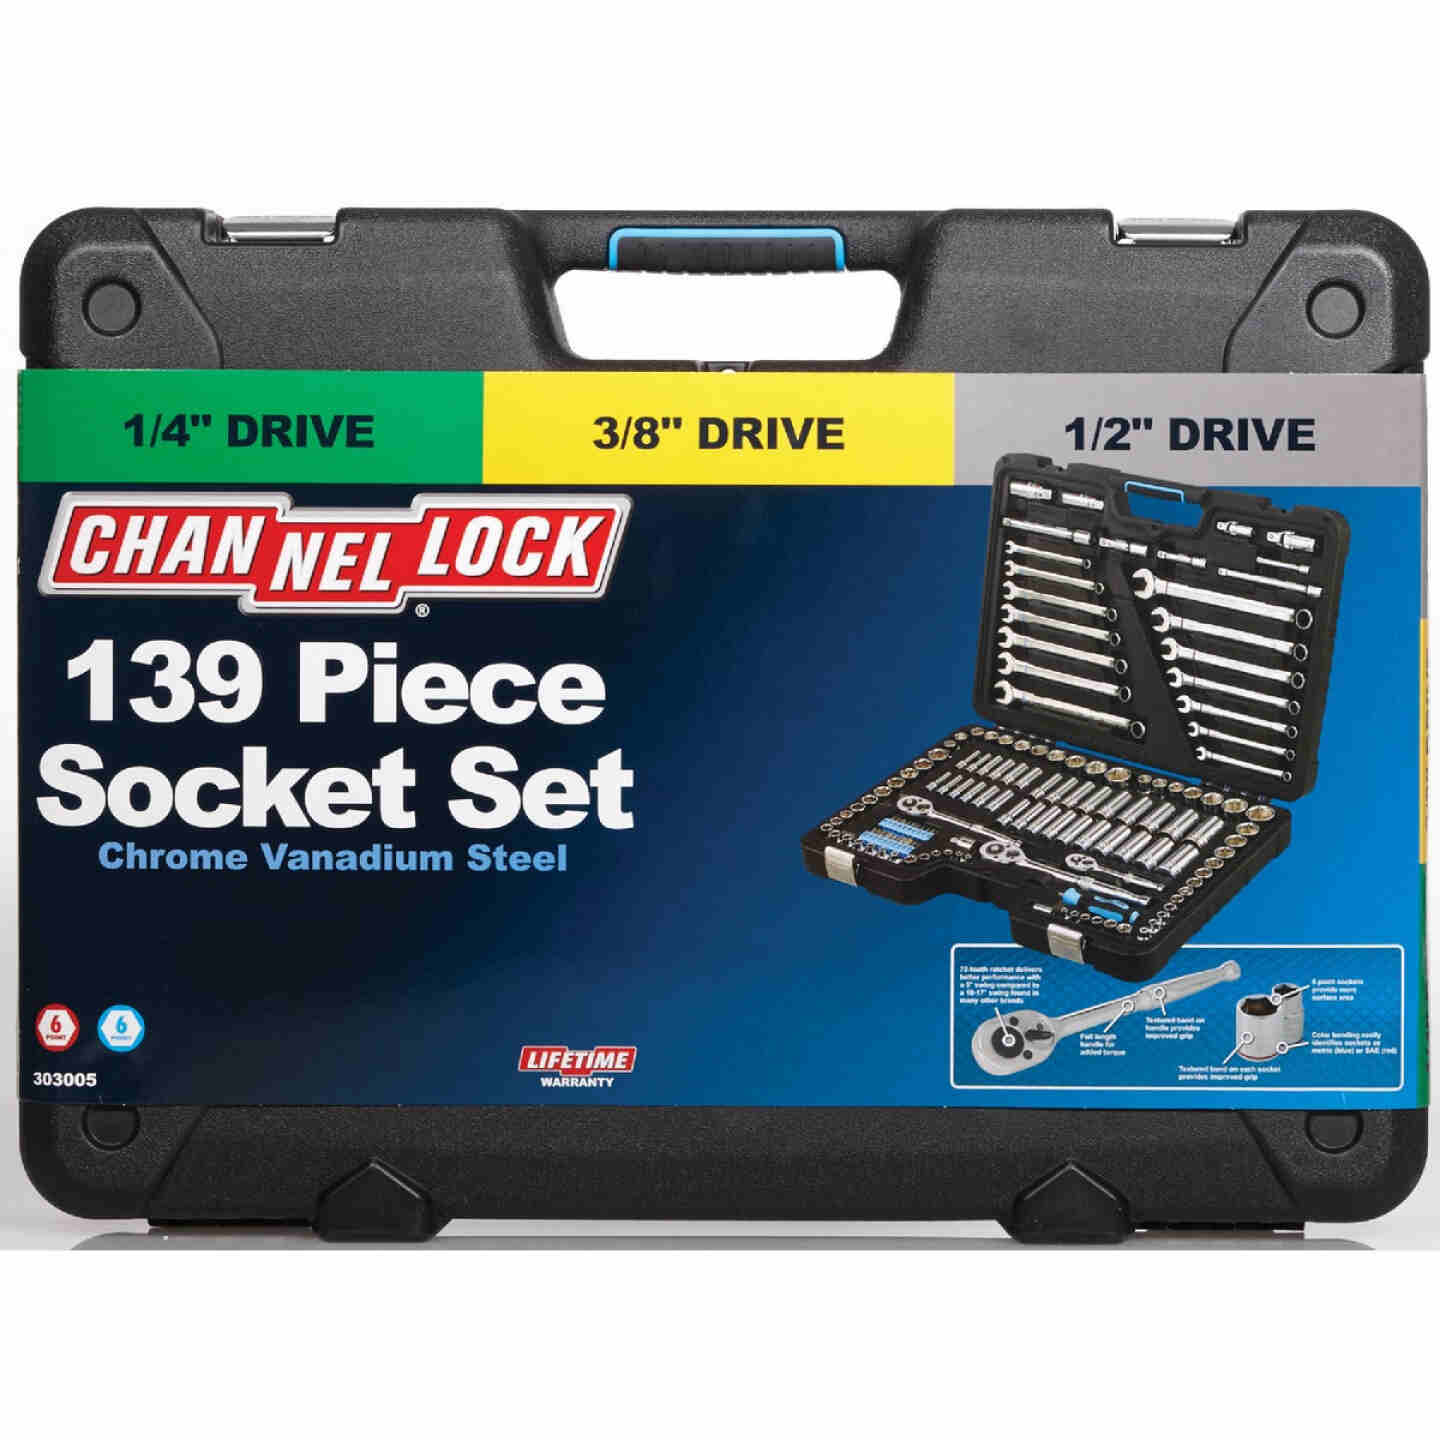 Channellock Standard and Metric 6-Point Combination Ratchet & Socket Set (139-Piece) Image 2